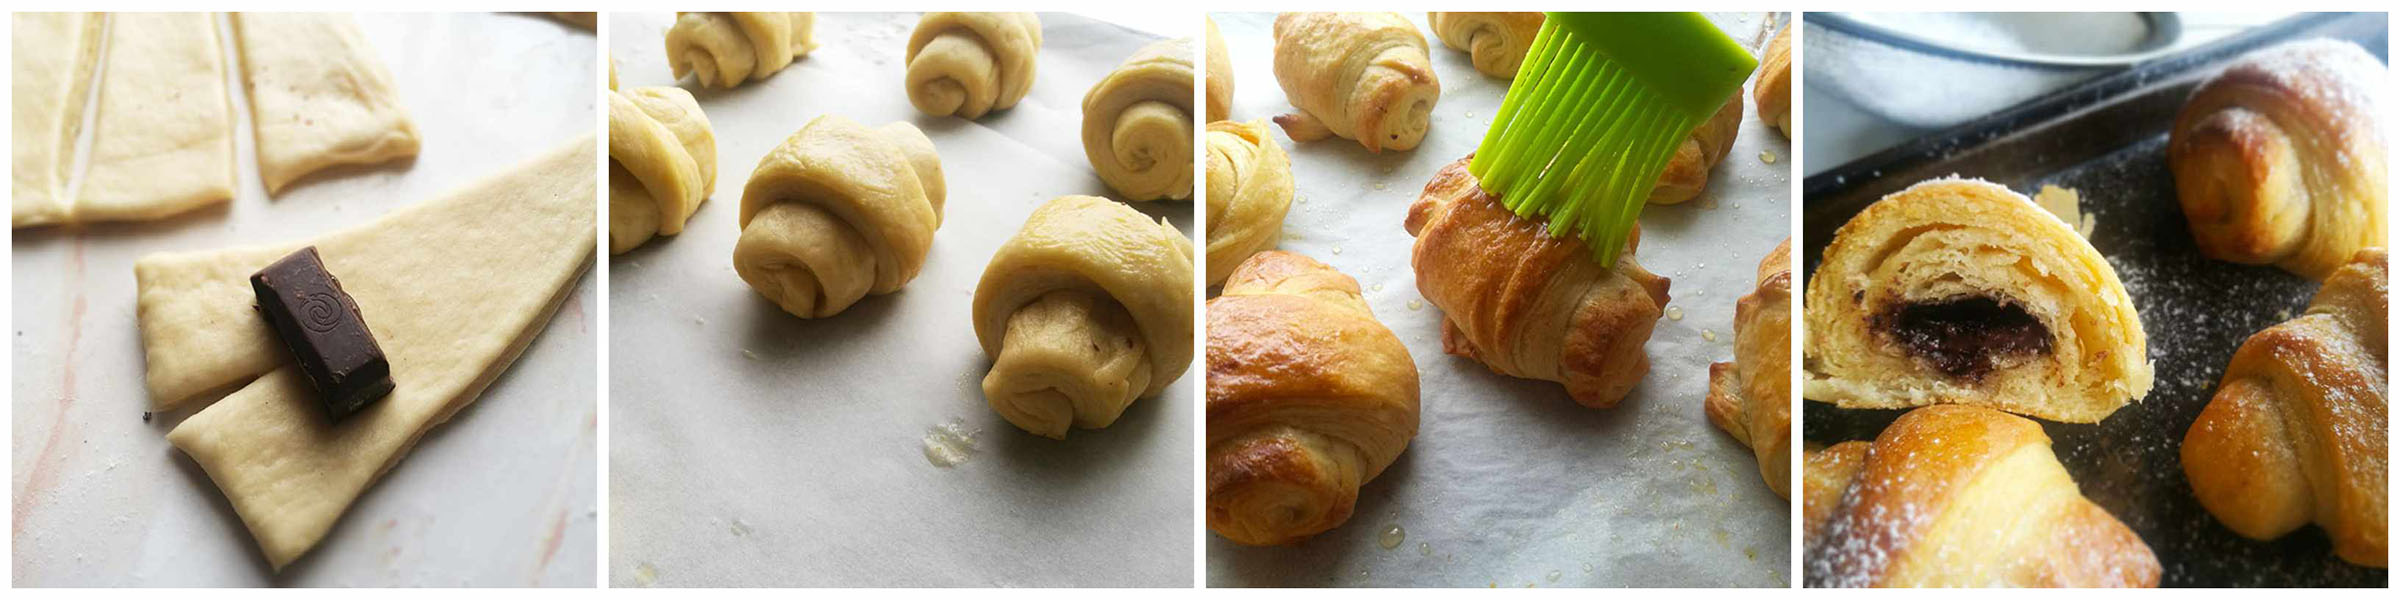 Chocolate filled Croissants